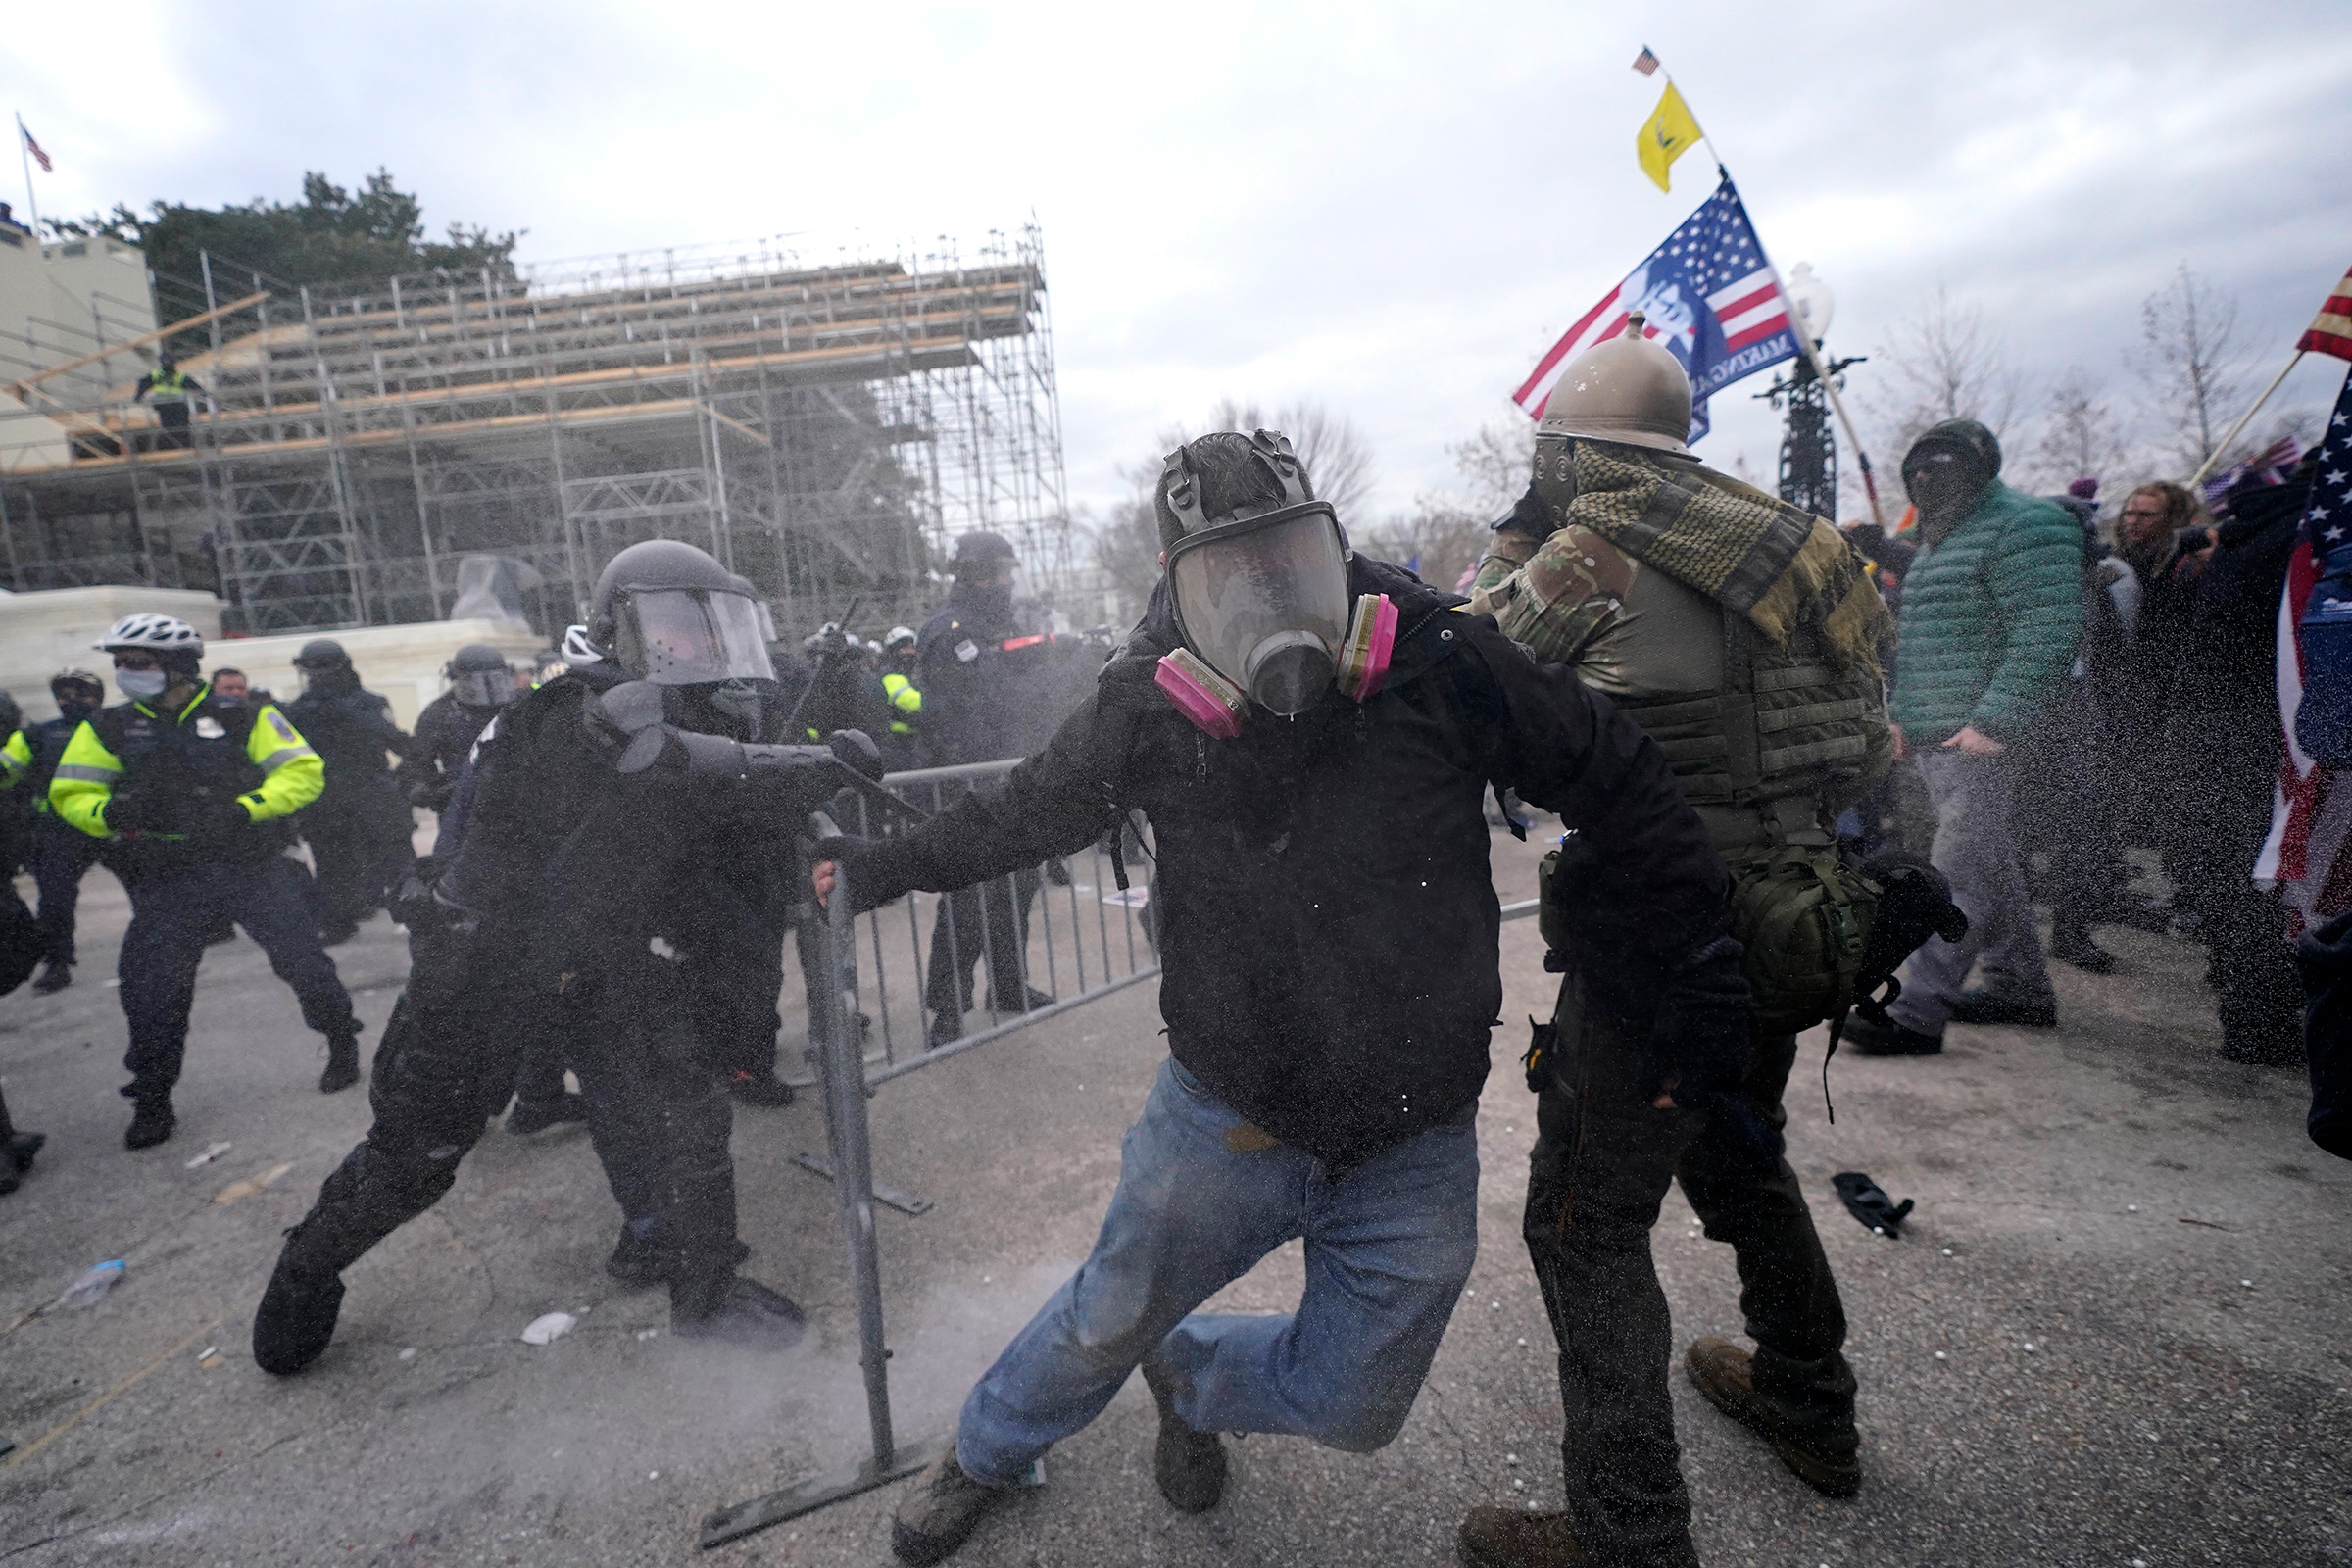 Trump supporters try to break through a police barrier at the Capitol in Washington, on Jan. 6, 2021.